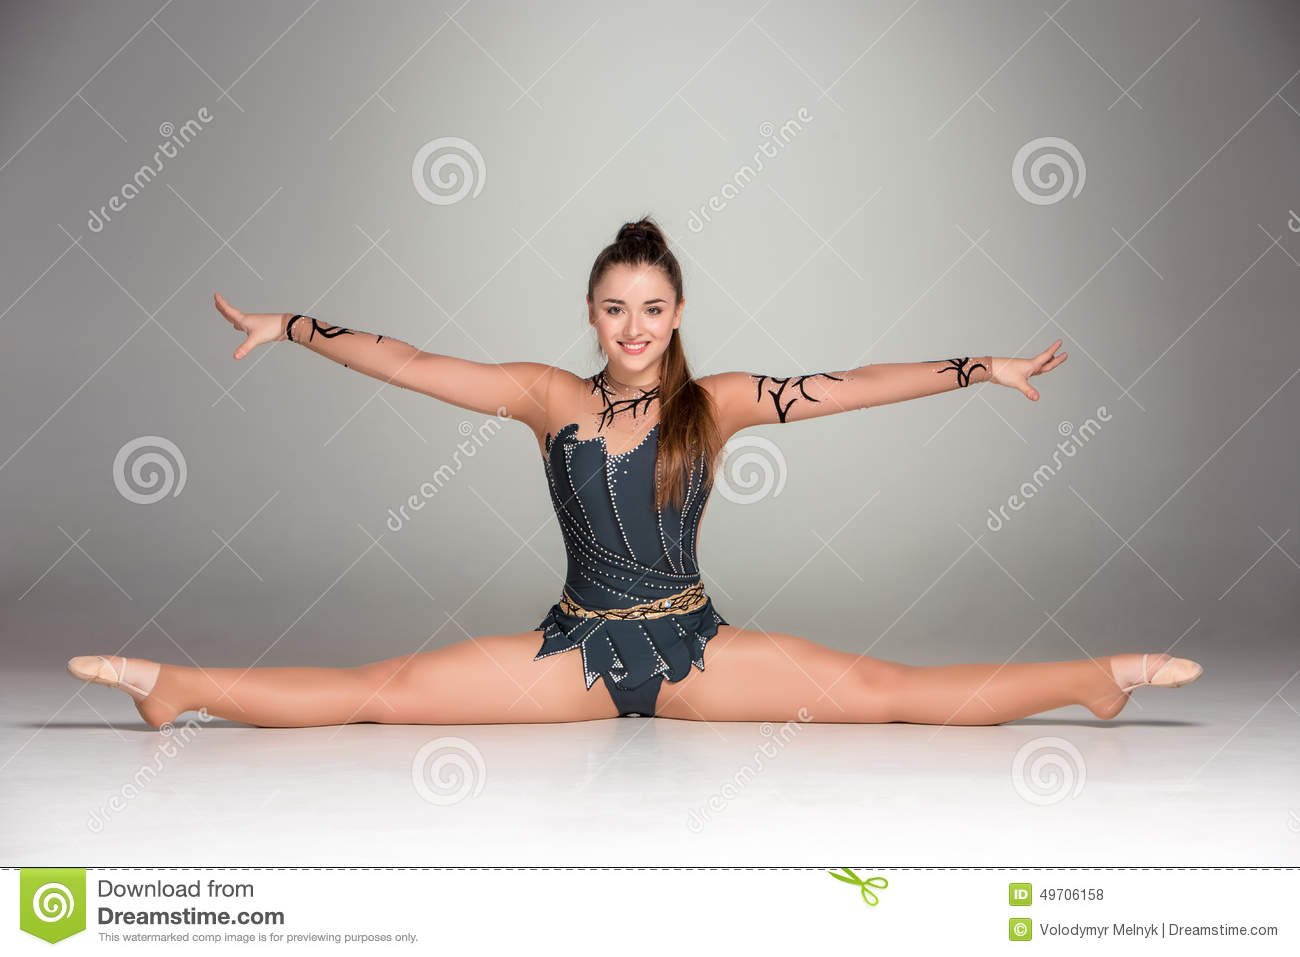 teen gymnastics photo